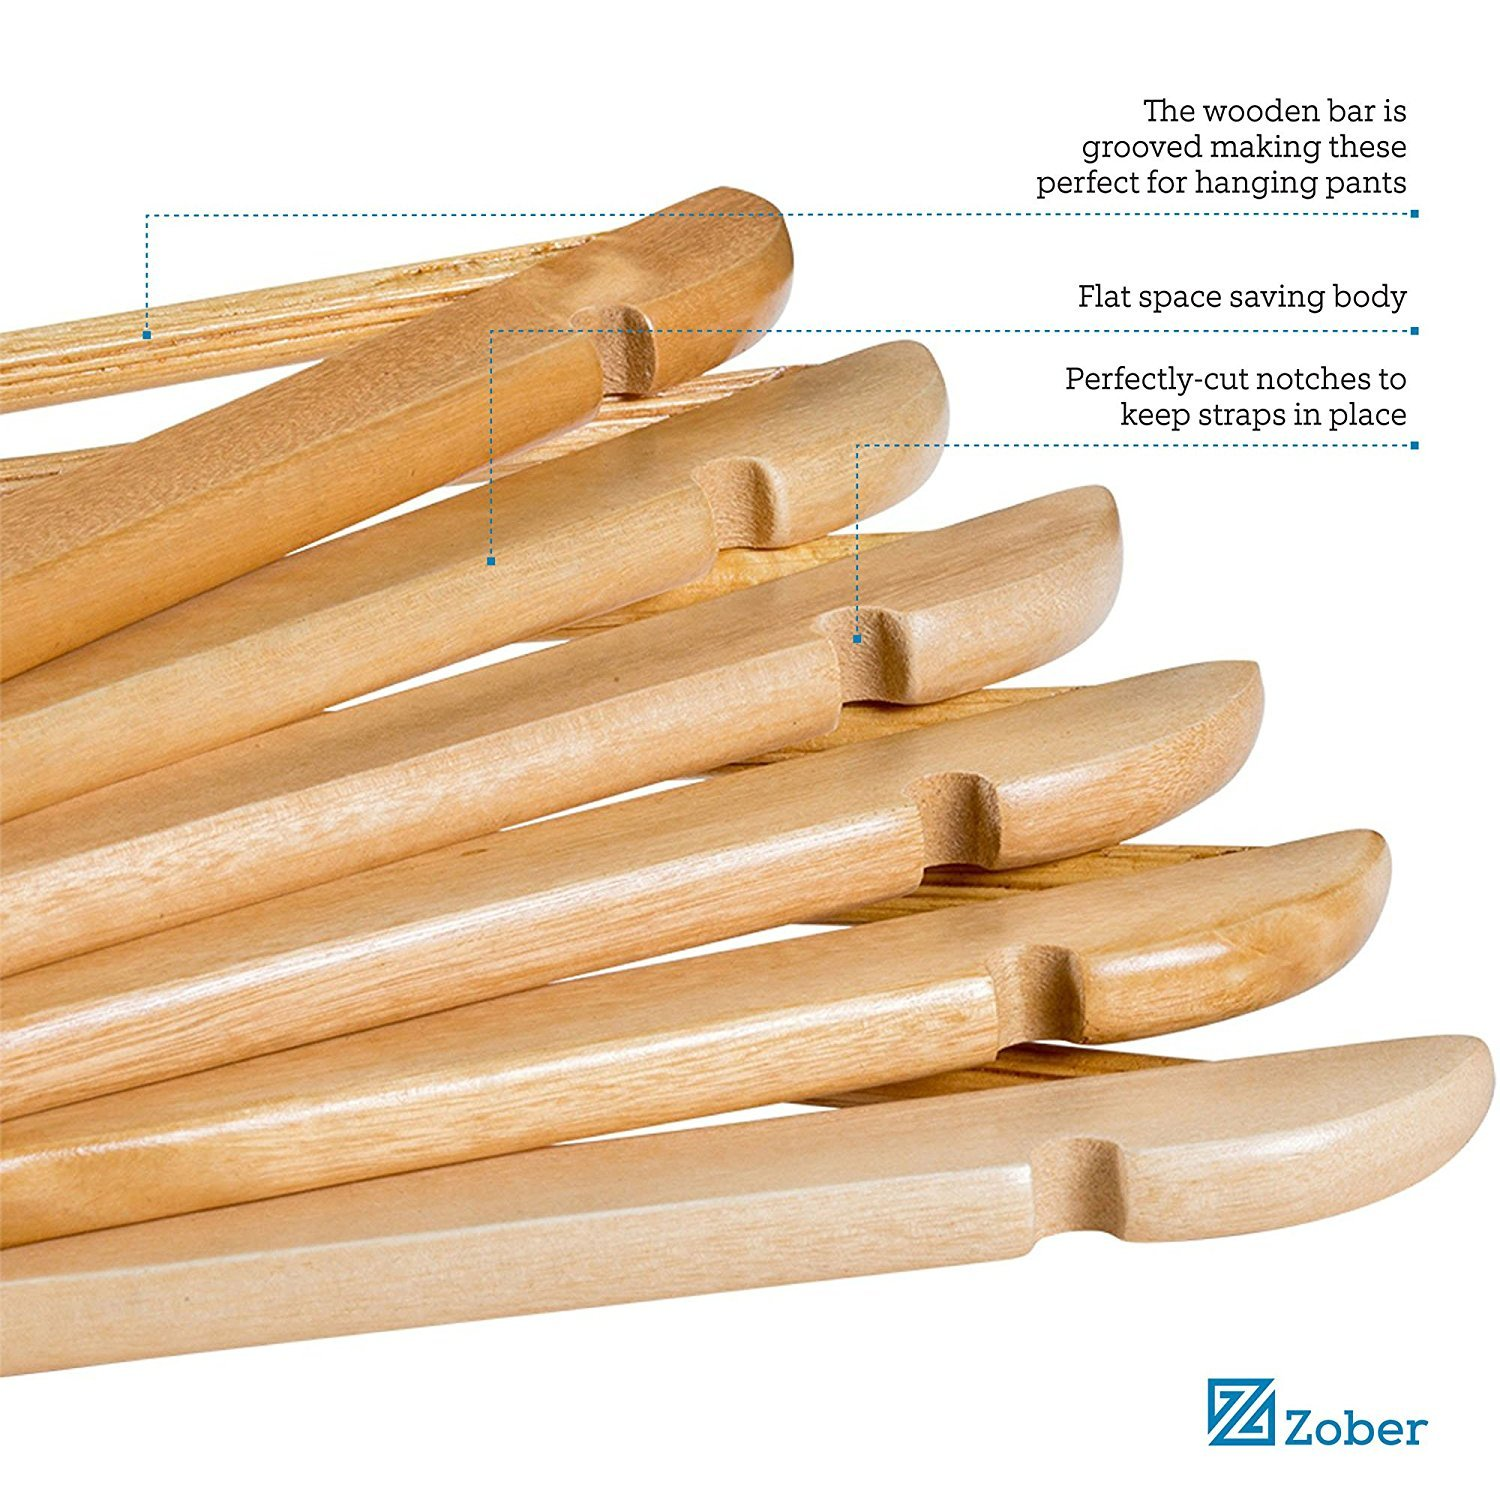 Zober Solid Wood Suit Hangers - 30 Pack - with Non Slip Bar and Precisely Cut Notches - 360 Degree Swivel Chrome Hook - Natural Finish Super Sturdy and Durable Wooden Hangers by ZOBER (Image #4)